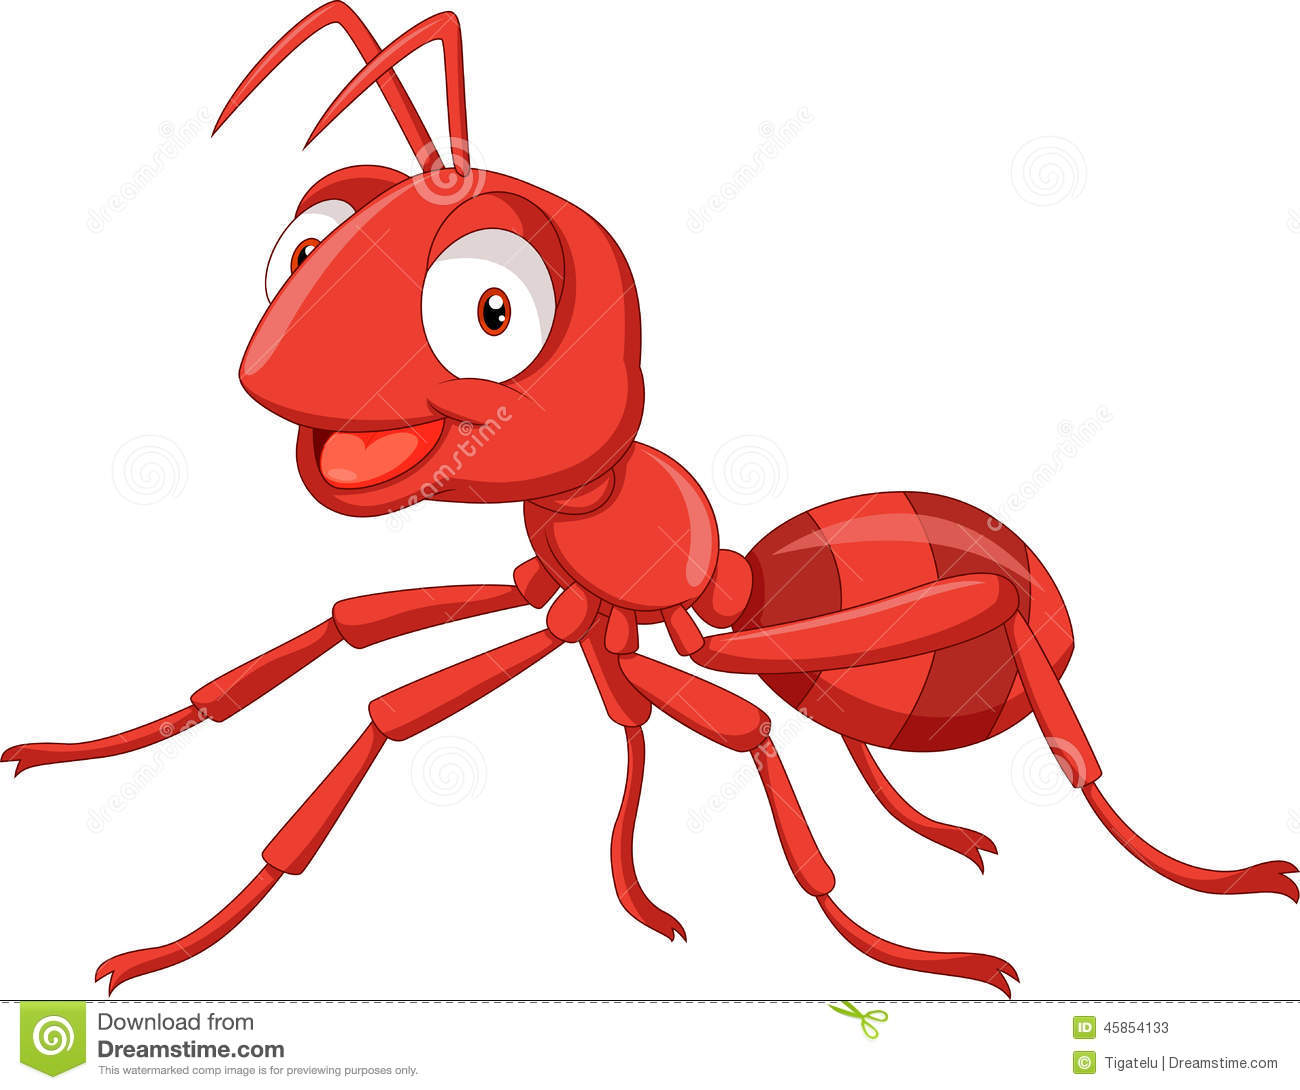 Ant clipart red ant. Ants panda free images